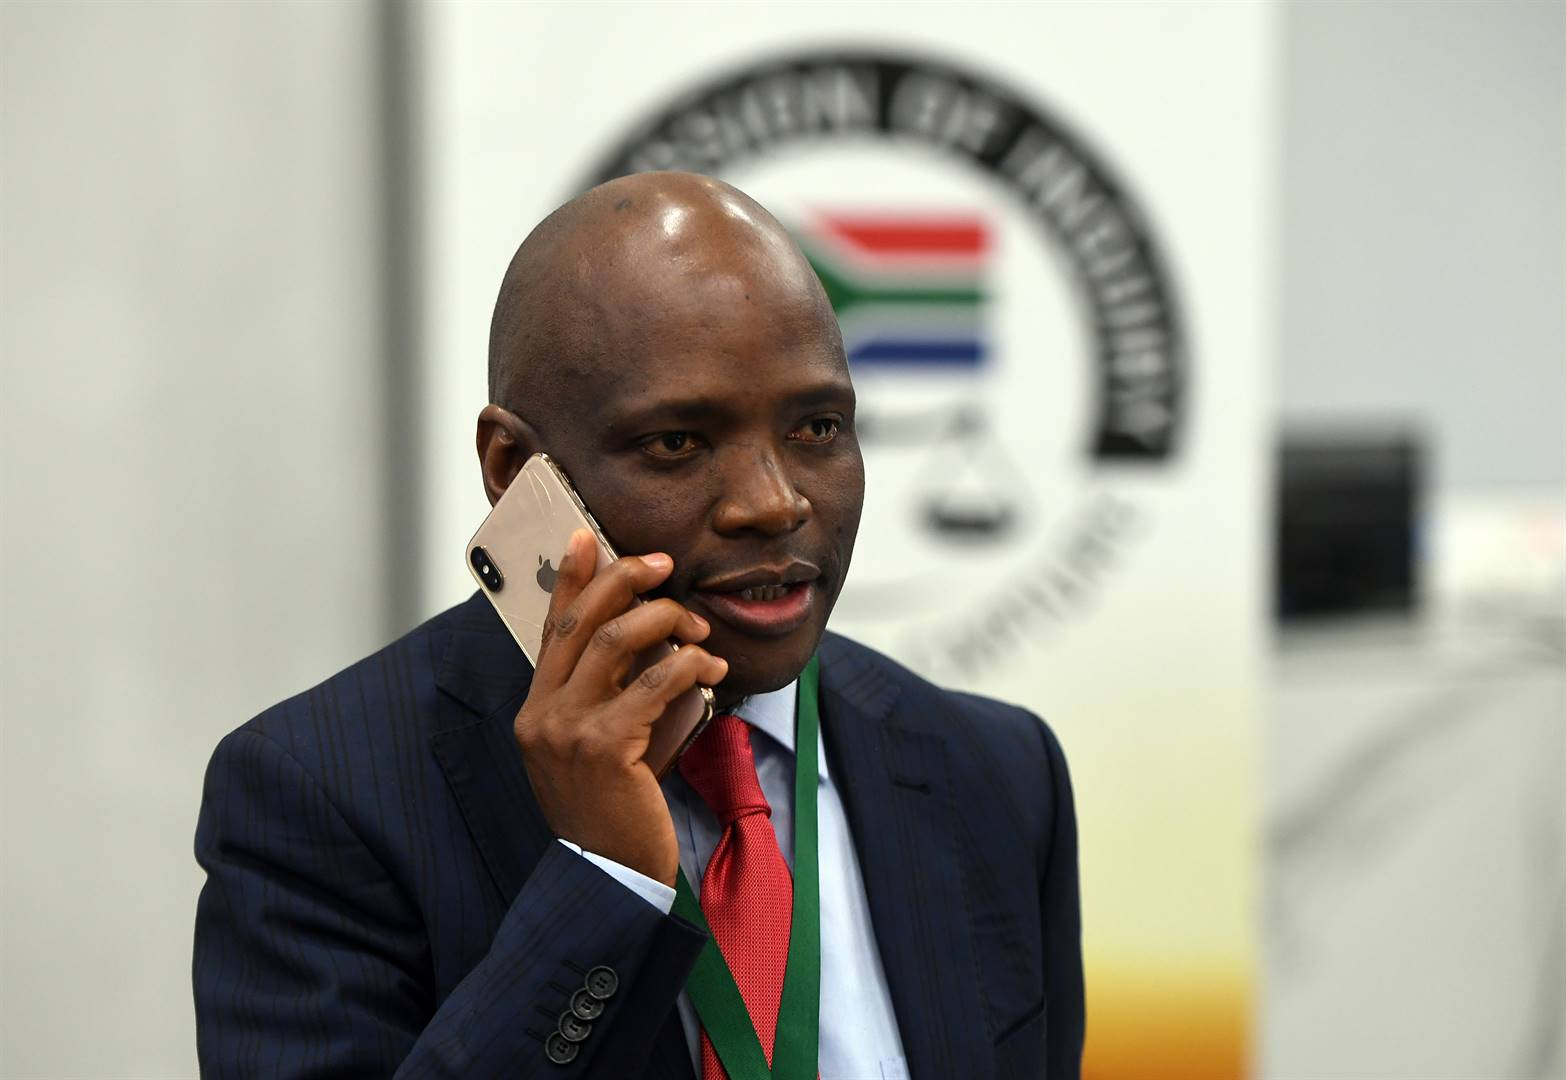 News24.com | Hlaudi Motsoeneng ordered to pay back better than R850k of SABC money mature for private ethical costs